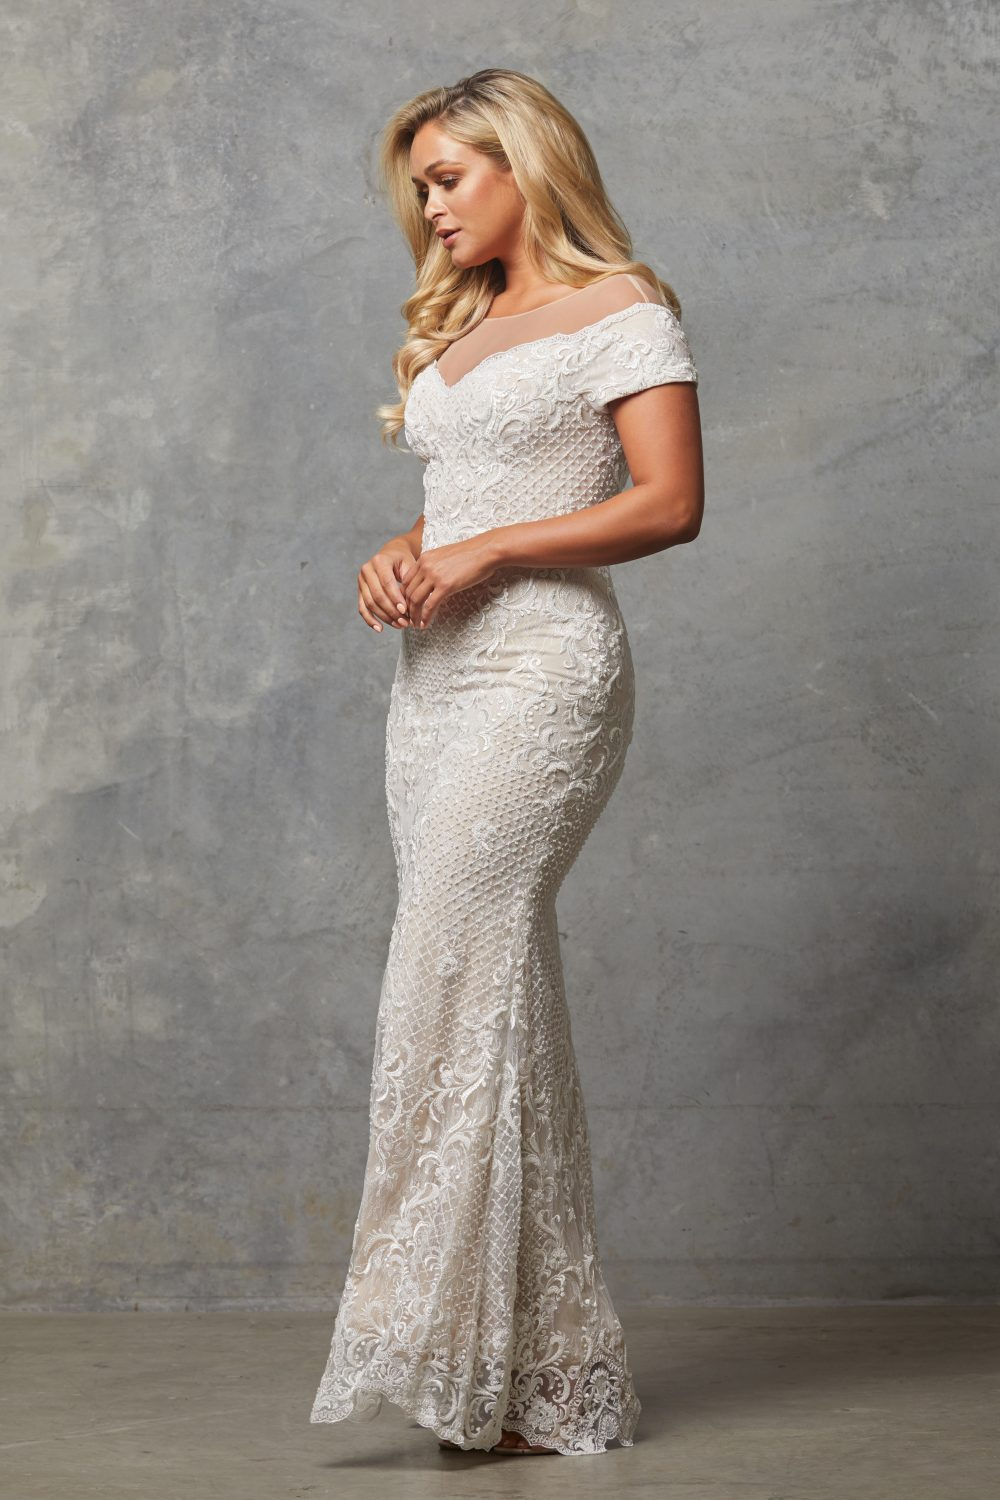 TC228-Vintage white nude-Evie dress-side